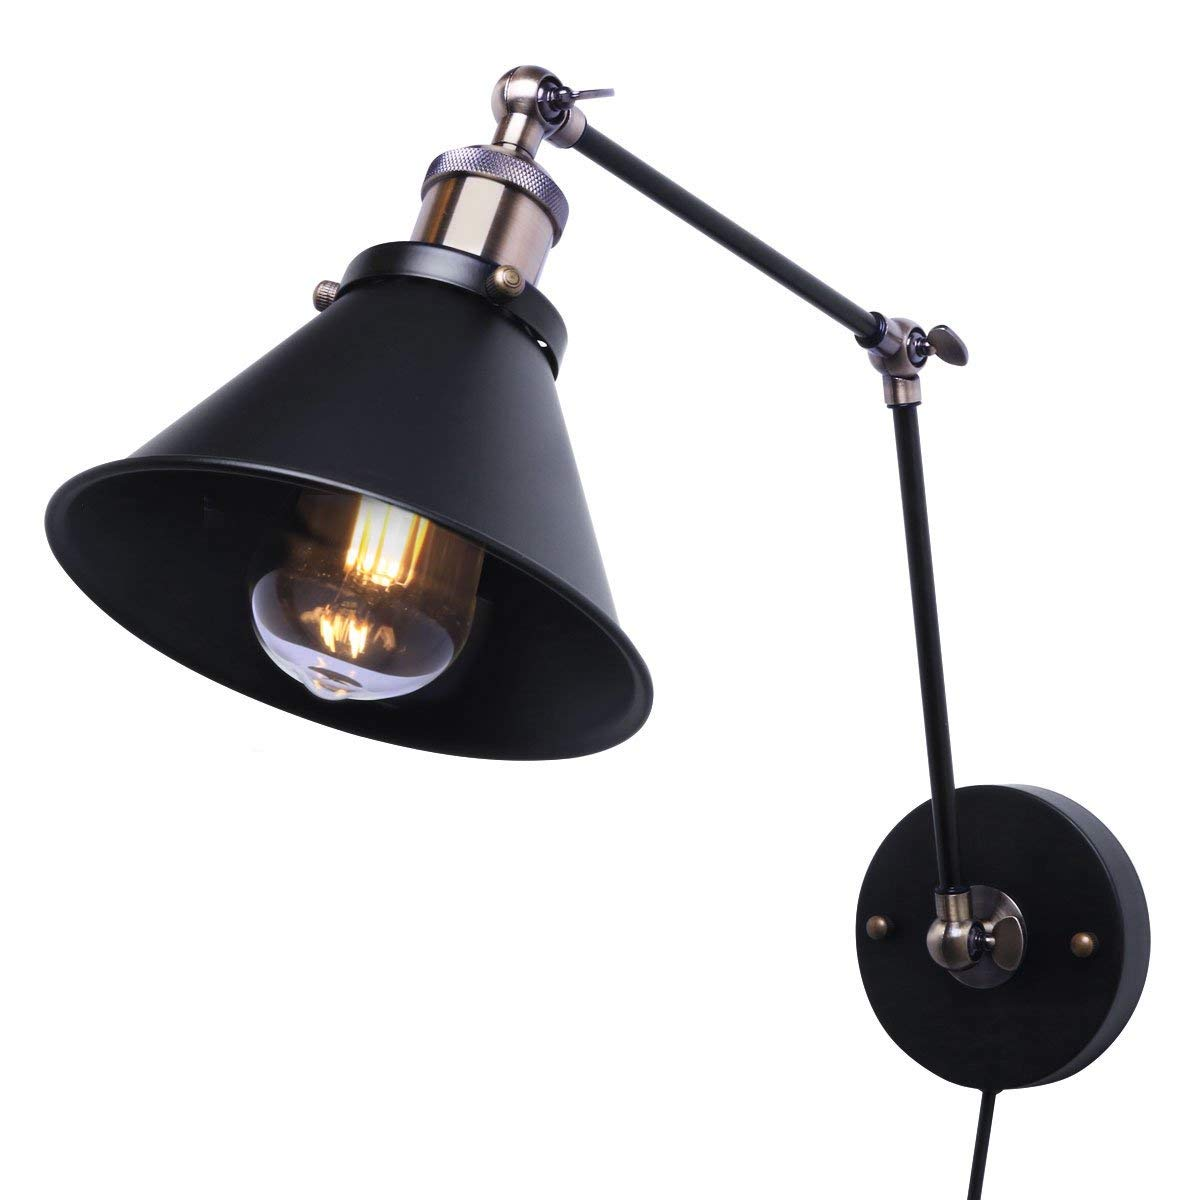 Cheap Swing Arm Wall Sconces Find Swing Arm Wall Sconces Deals On Line At Alibaba Com